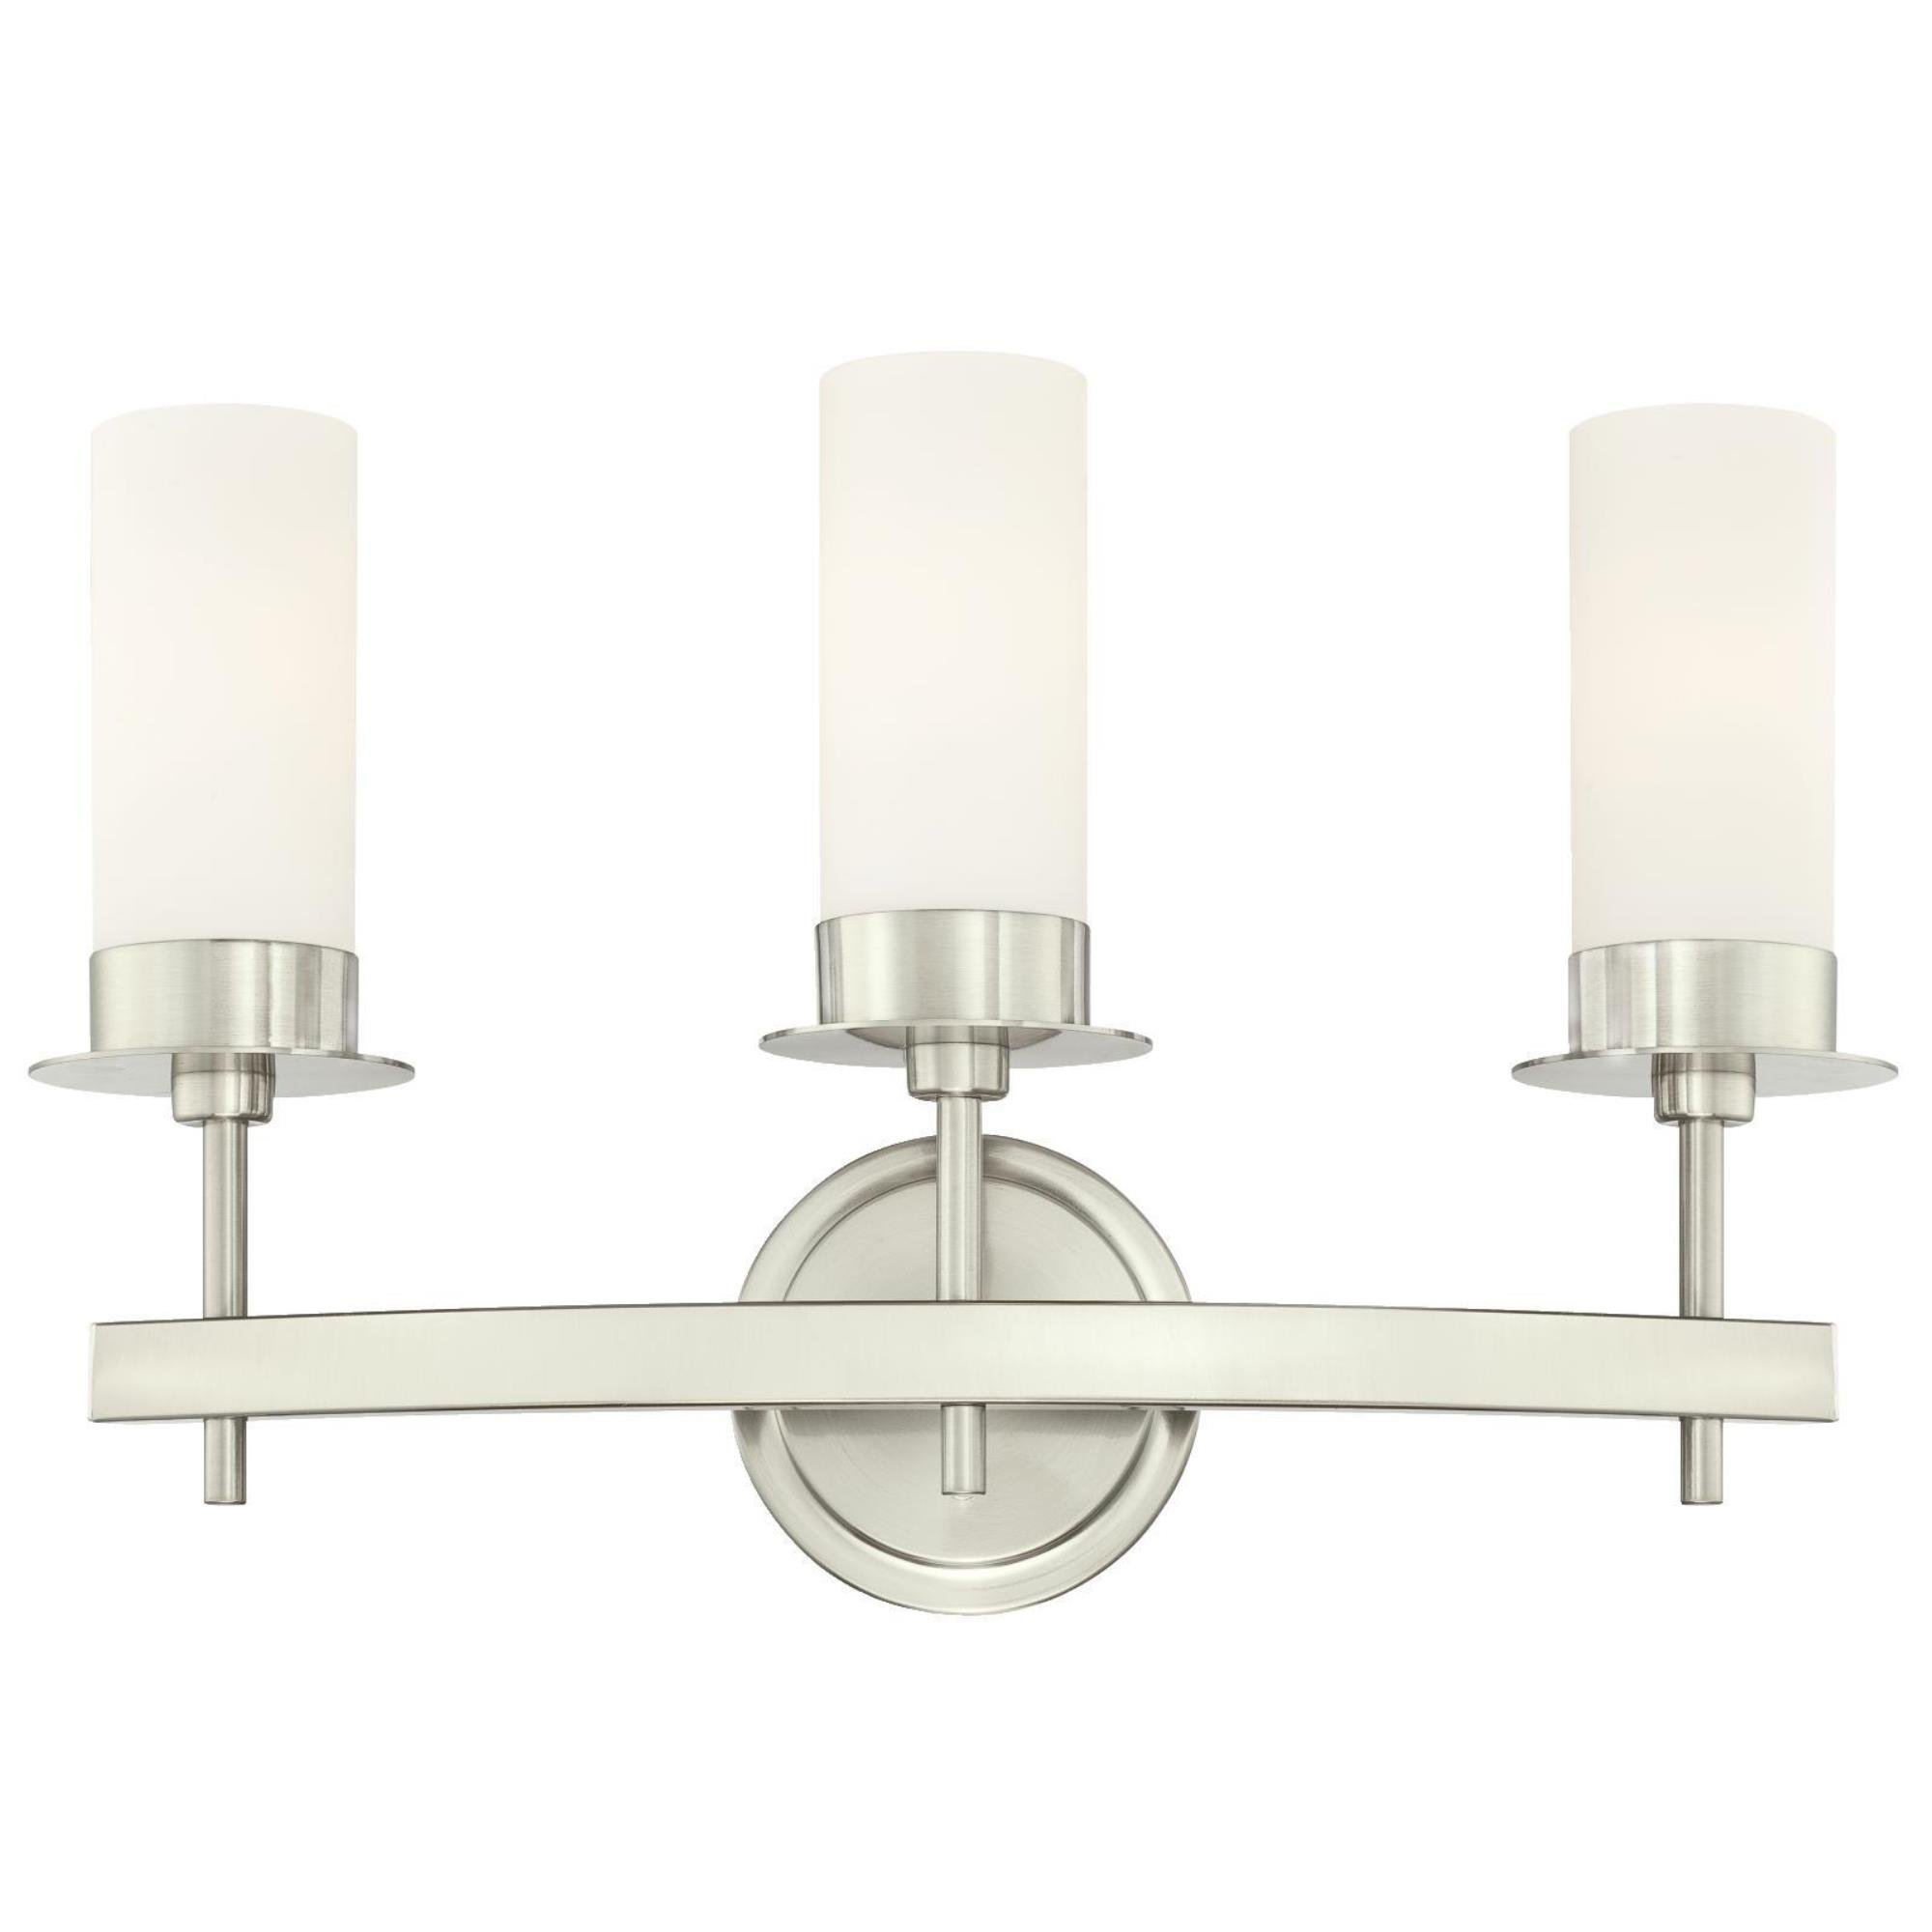 Westinghouse 6327100 Roswell Indoor Wall Fixture, Brushed Nickel Finish with Frosted Opal Glass, Three Light by Westinghouse